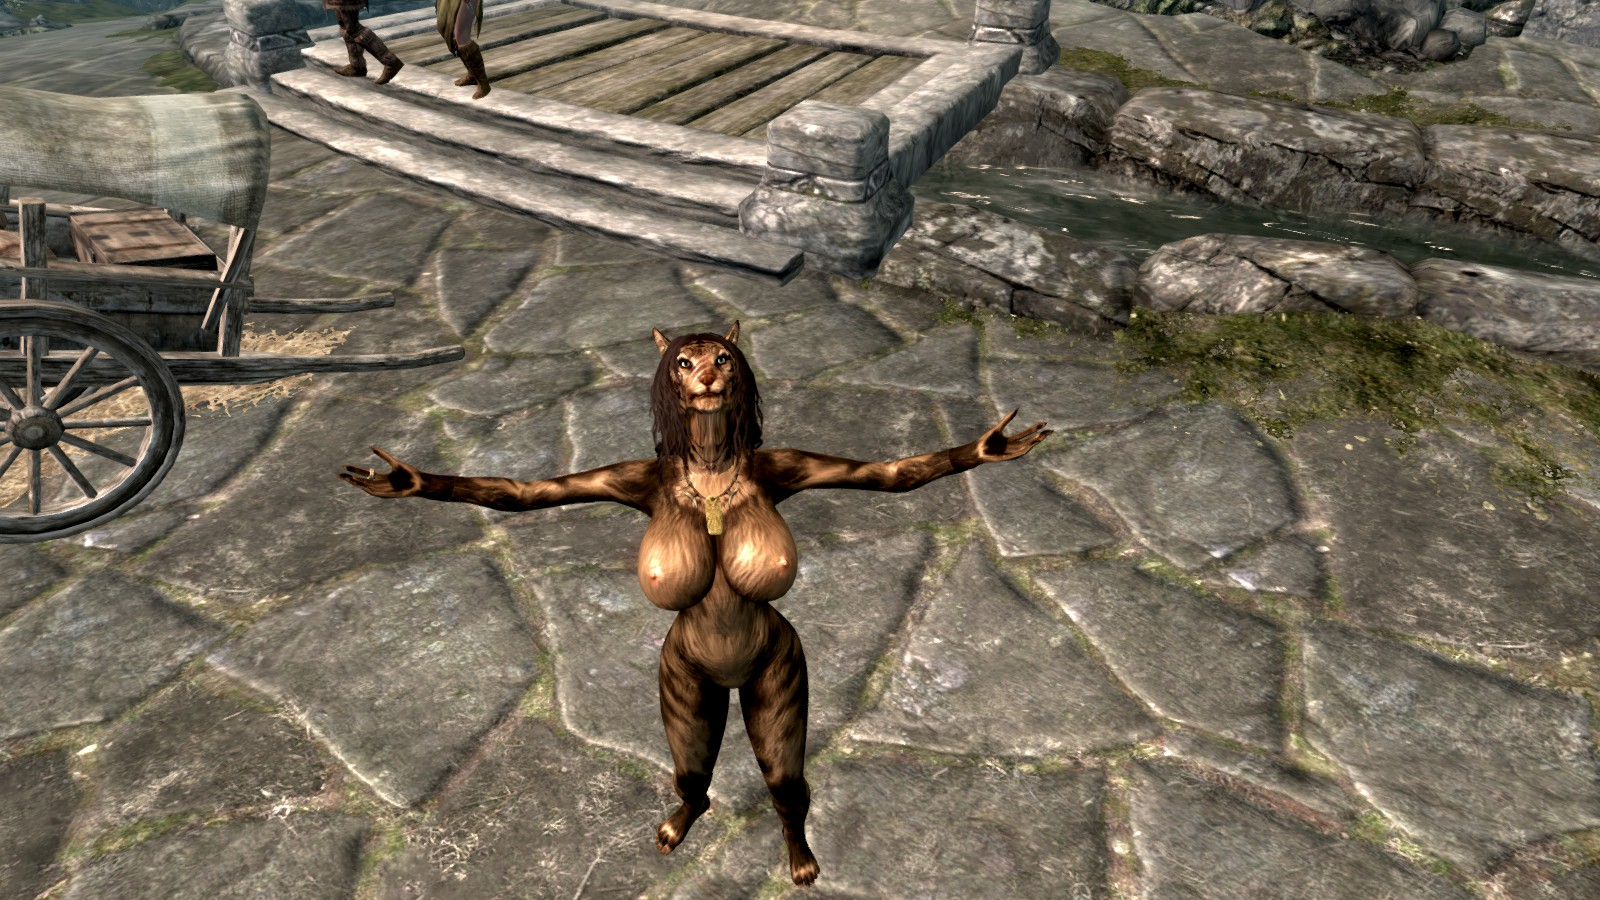 Skyrim khajiit rule 34 sexy young pussys